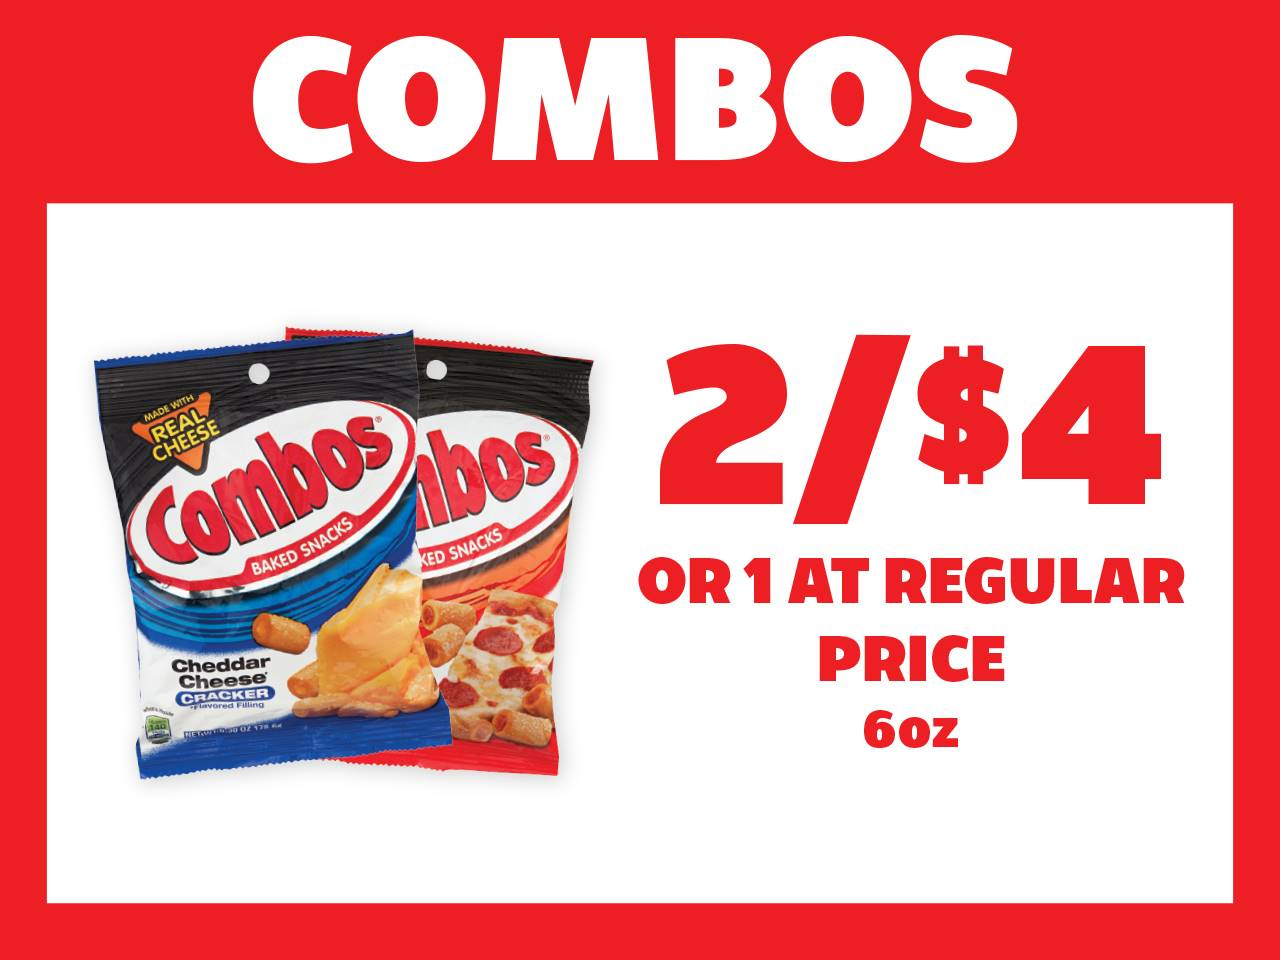 6oz Combos 2 for $4 or 1 at Reg Price